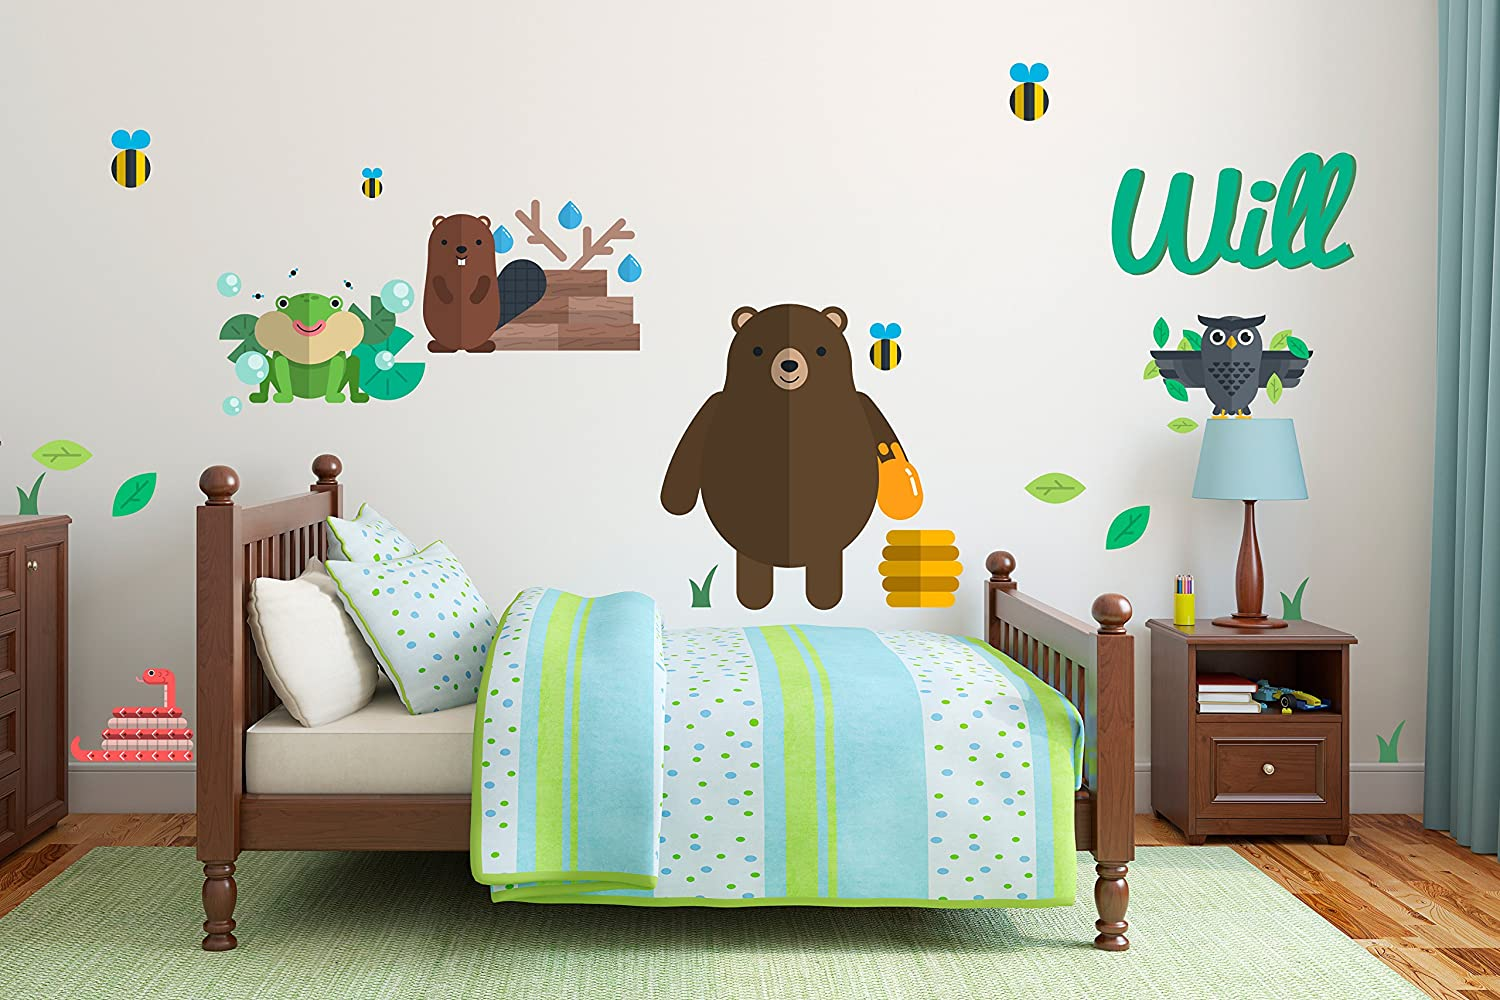 Personalized animals bear bee honey owl snake mole boy girl unisex decoration mural wall decal sticker for home interior decoration car laptop wide 57